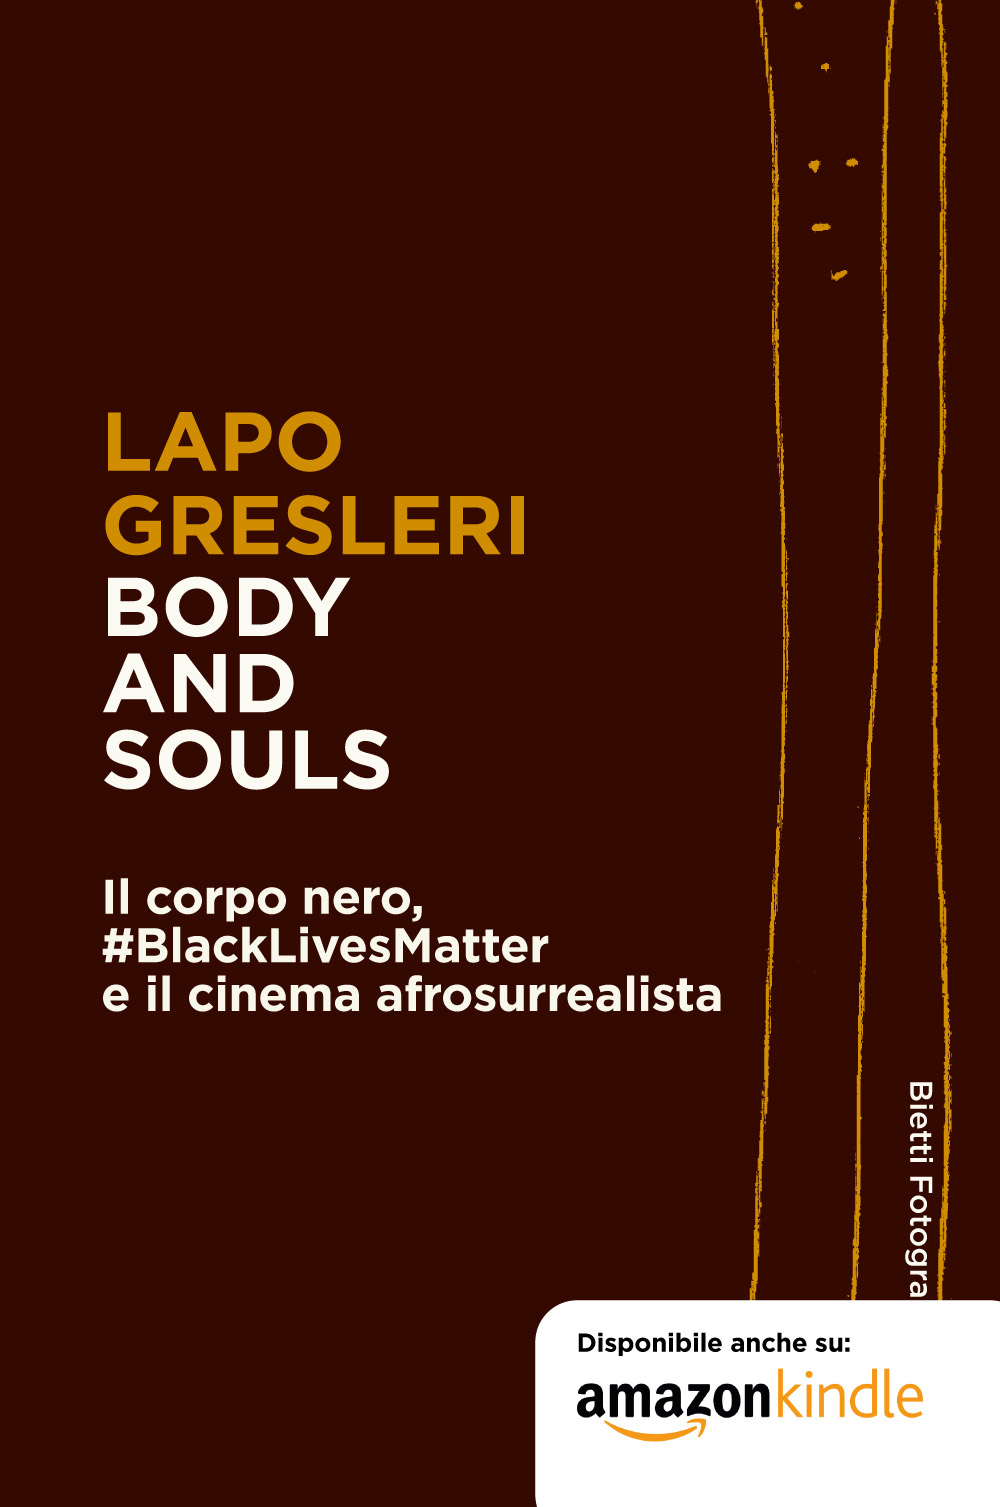 Body and Souls. Il corpo nero, #BlackLivesMatter e il cinema afrosurrealista